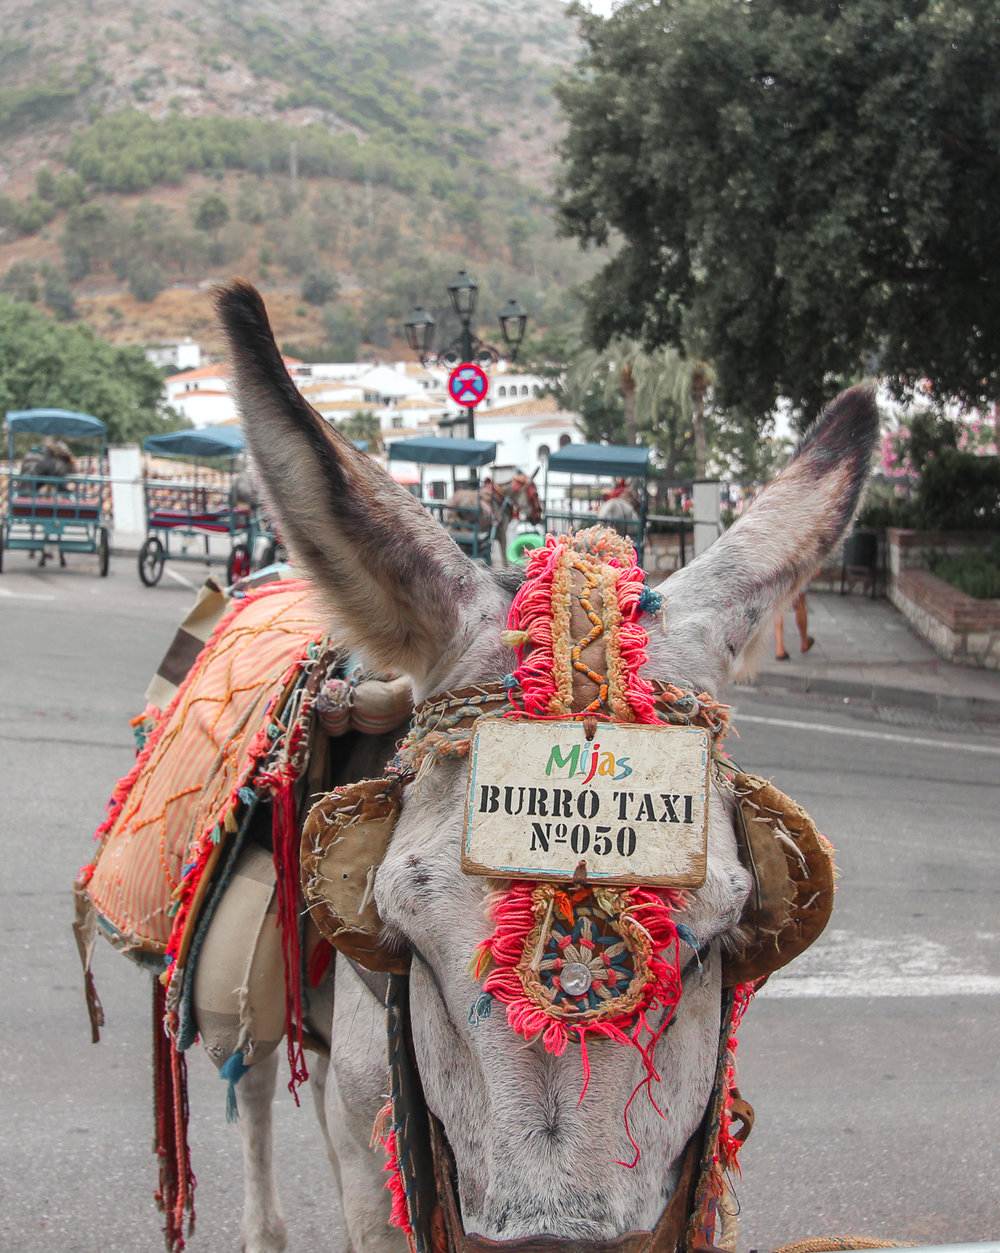 Hard work in Mijas - They are still using donkeys as a commonly used taxi service! Taking tourists all around the hills!